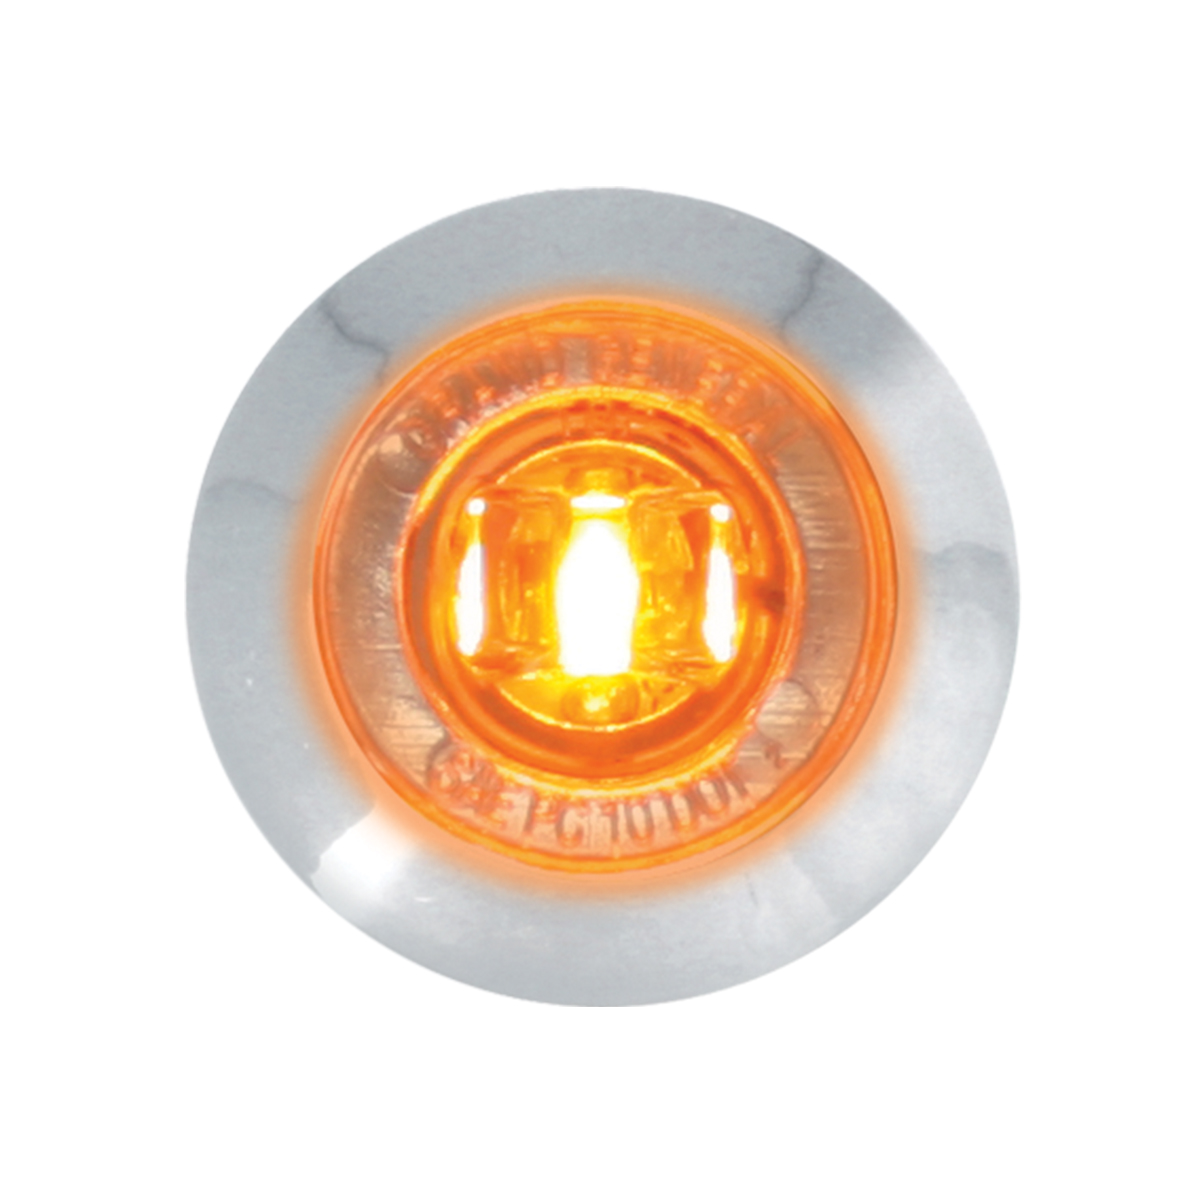 "75221 1-1/4"" Dia. Dual Function LED Light with Chrome Plastic Bezel and Nut"